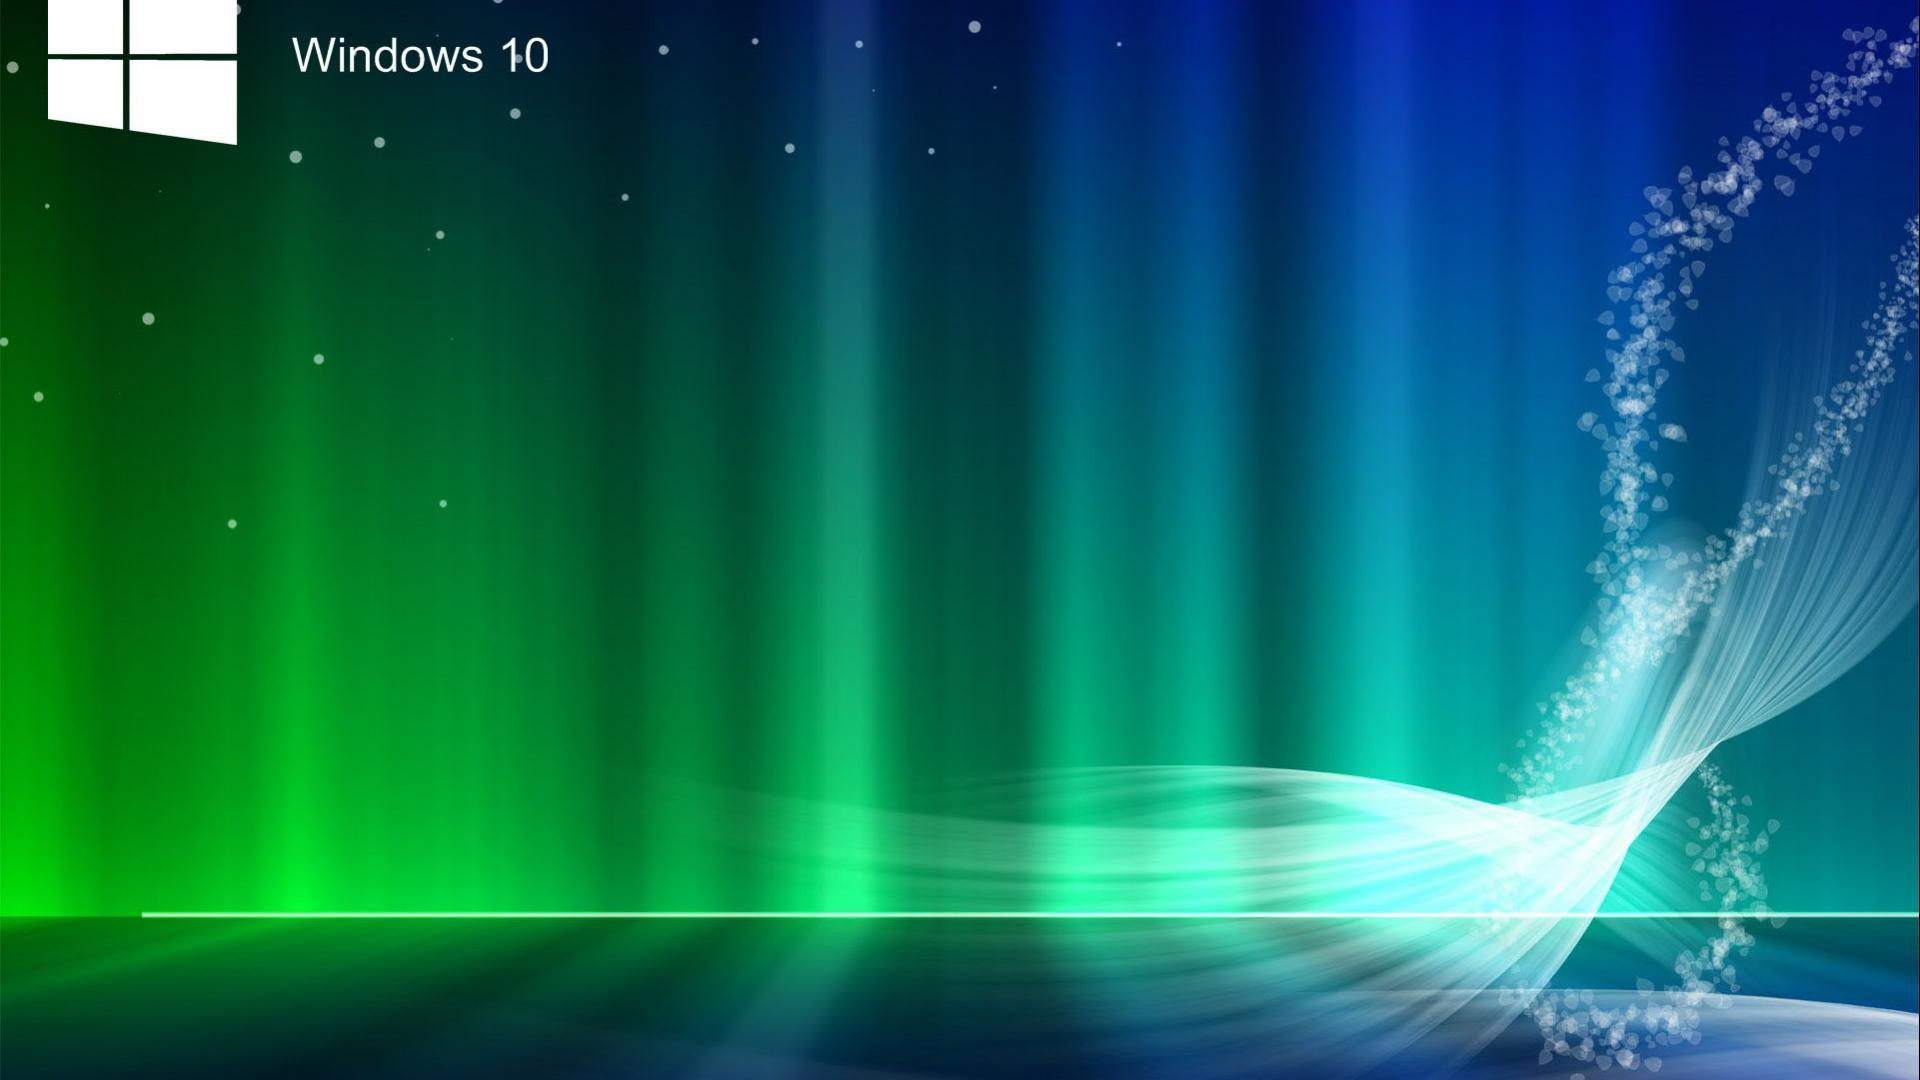 Windows 10 Wallpaper Download for Laptop Backgrounds HD Wallpapers 1920x1080